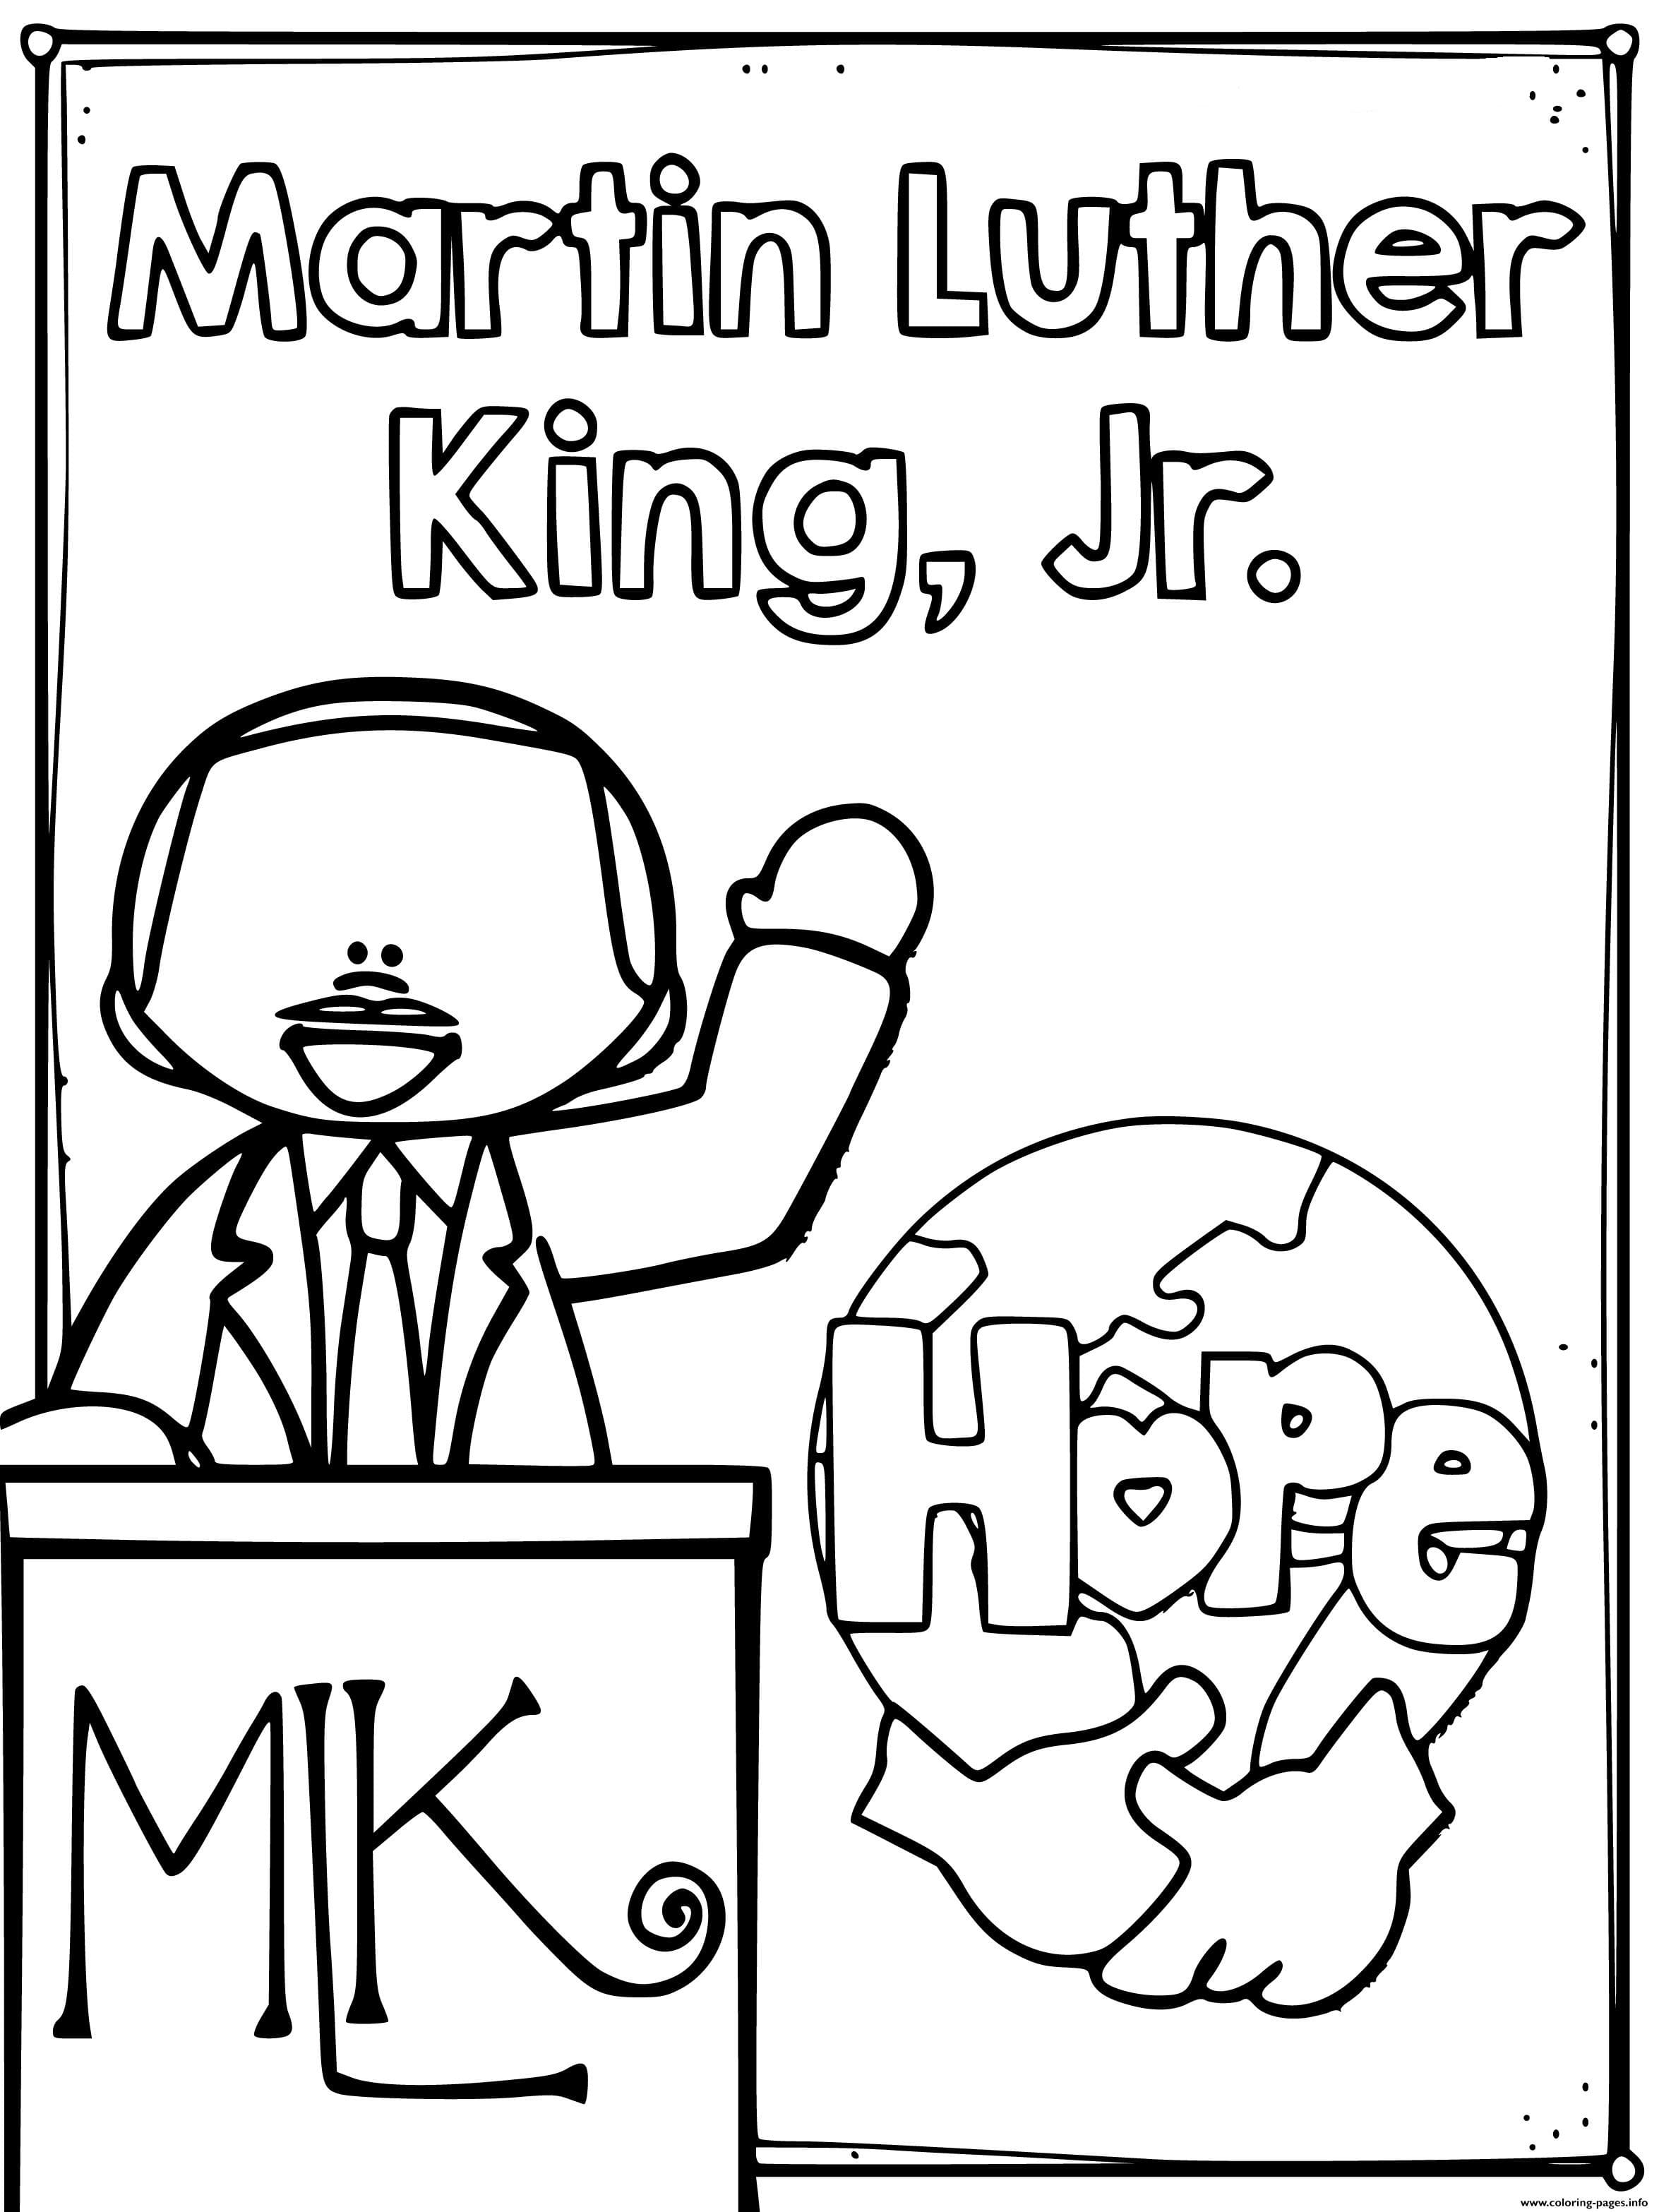 martin luther king coloring page free printable martin luther king jr day mlk day page luther king martin coloring